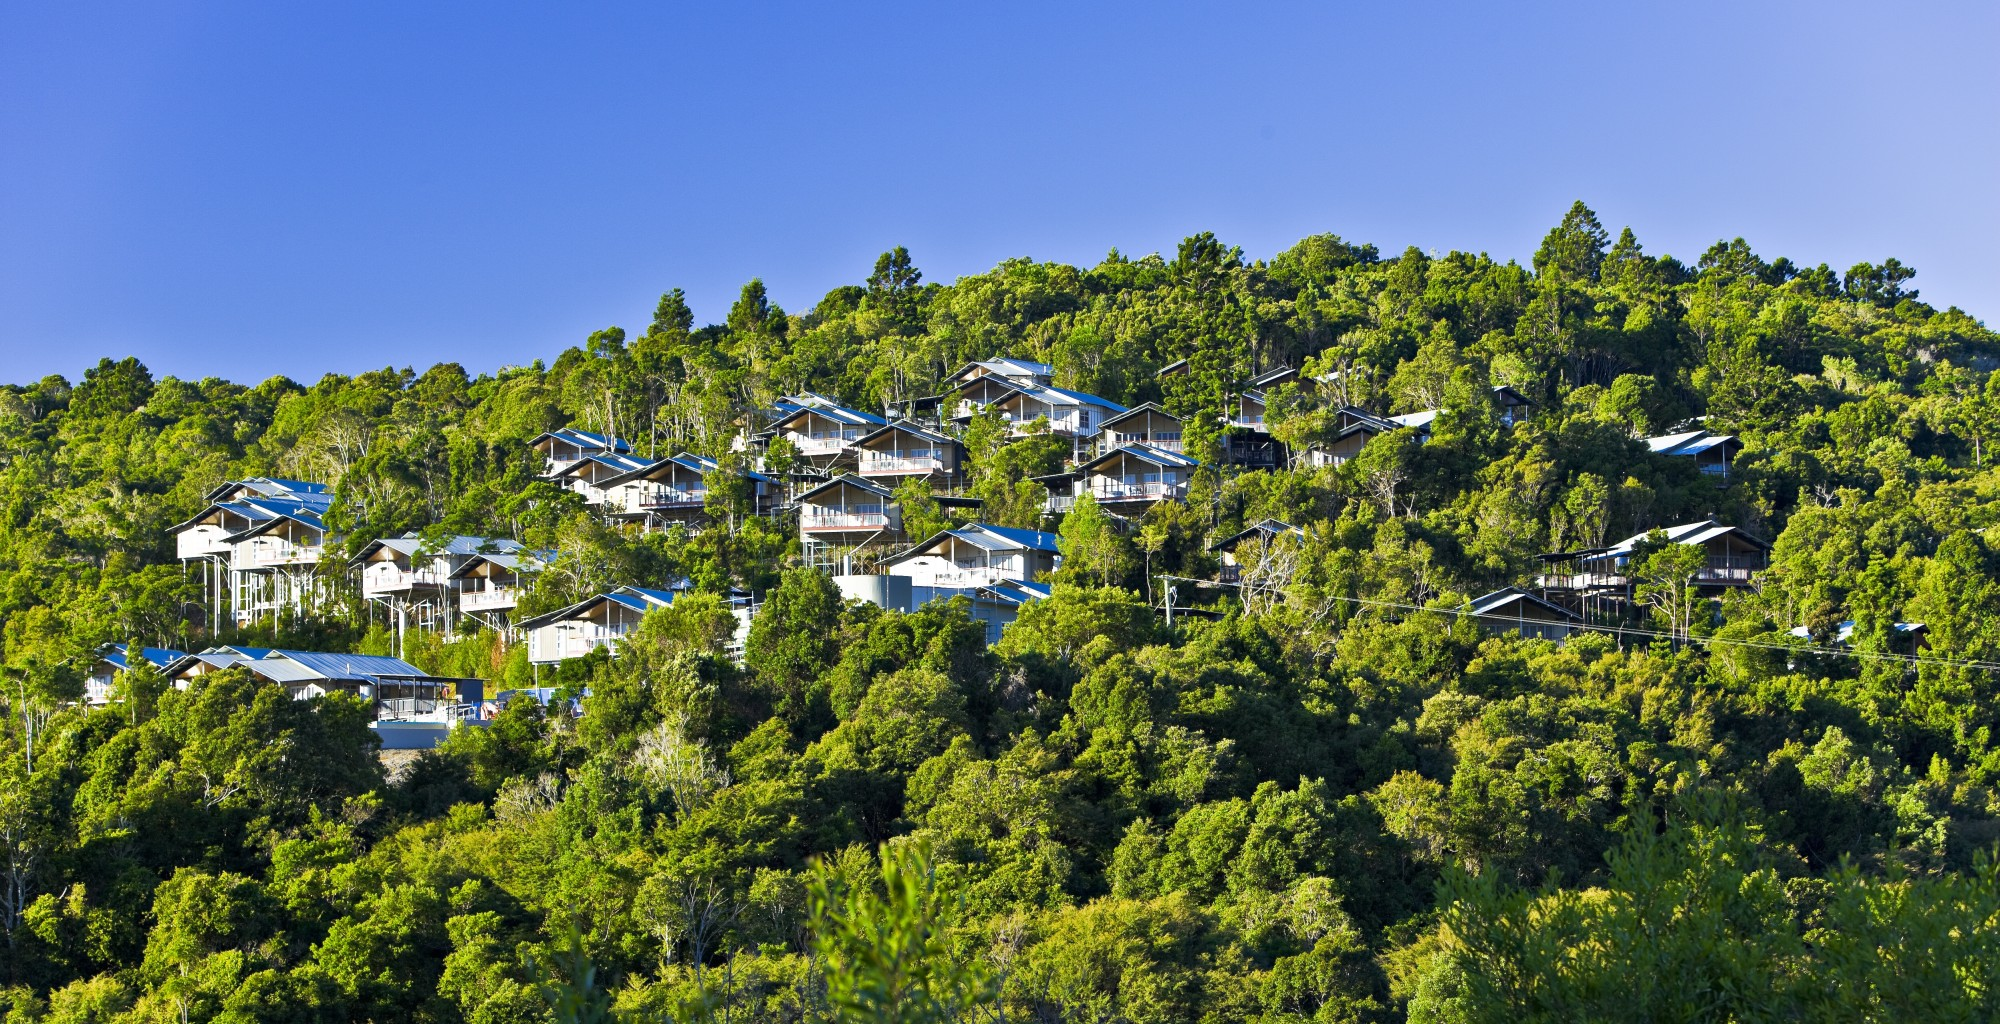 O'Reilly's Rainforest Retreat, Villas and Lost World Spa